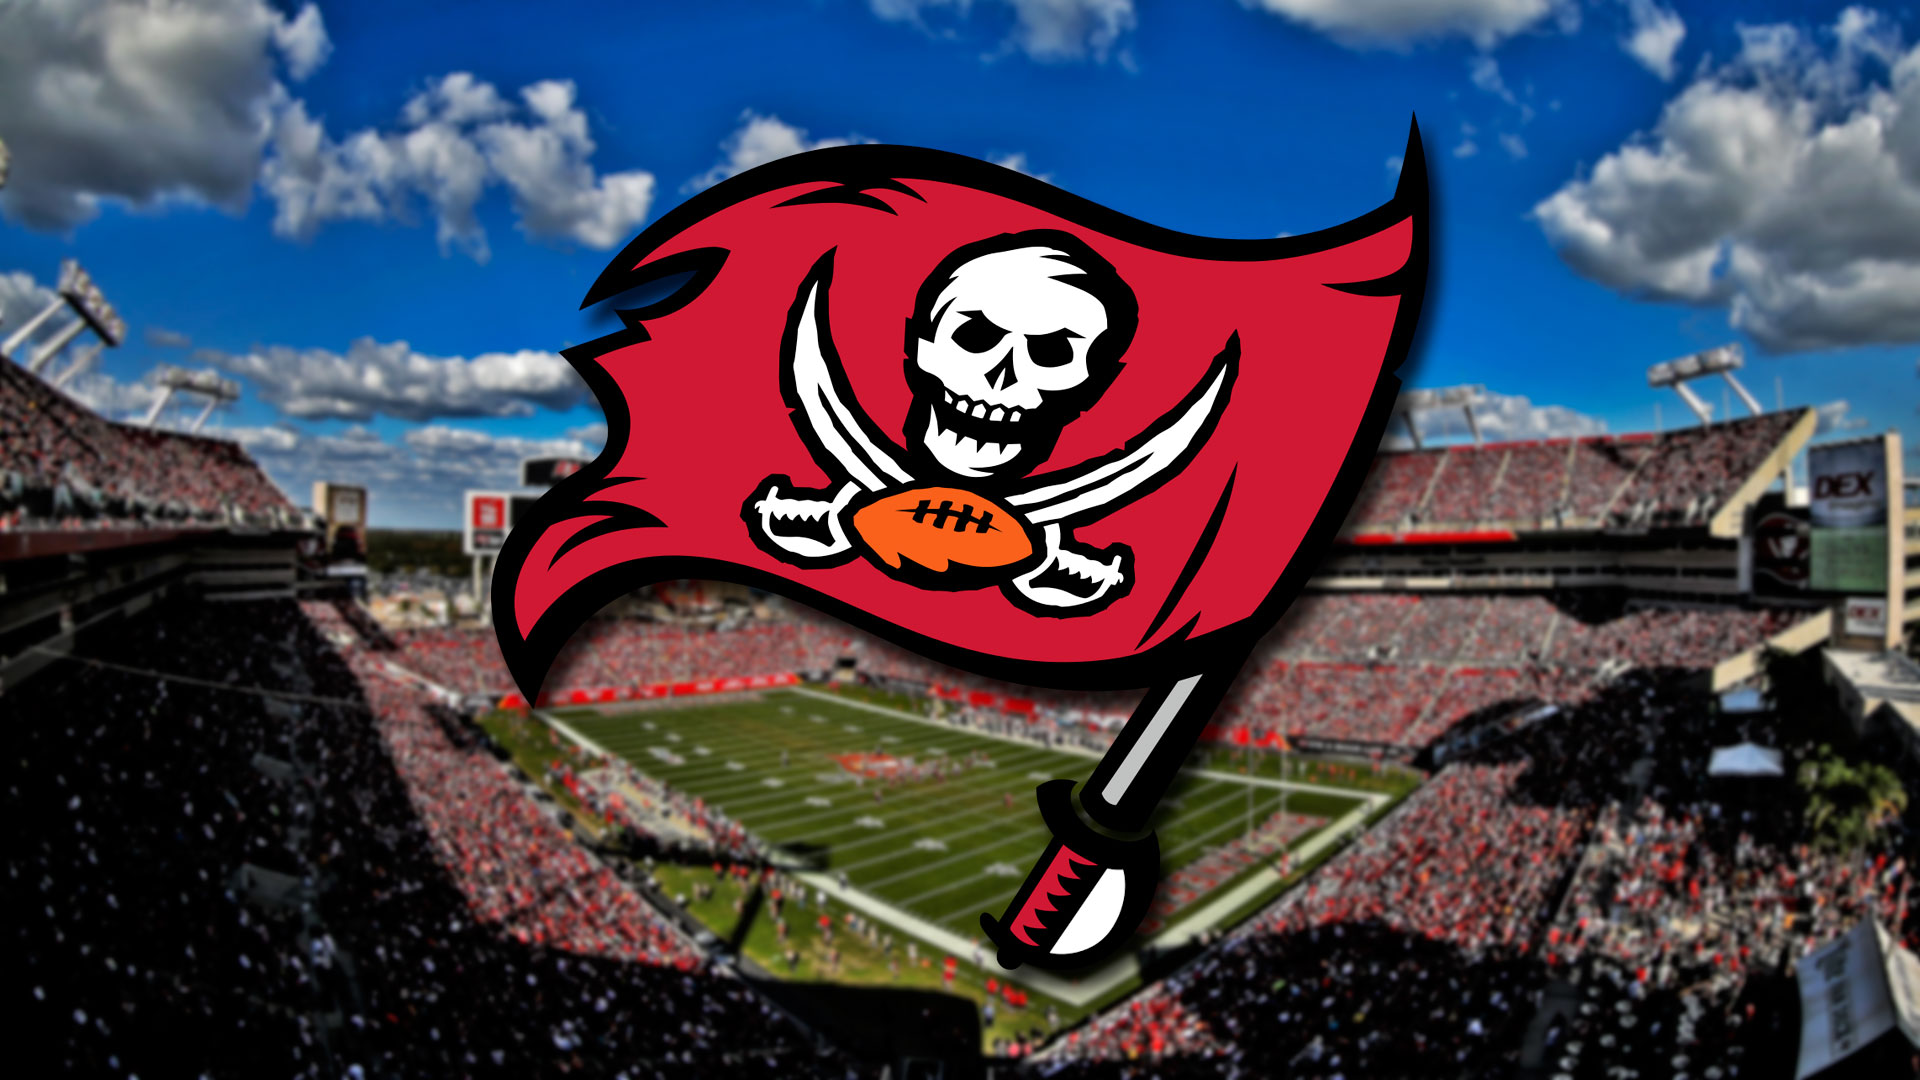 Tampa Bay Buccaneers Wallpapers Posted By Ethan Peltier